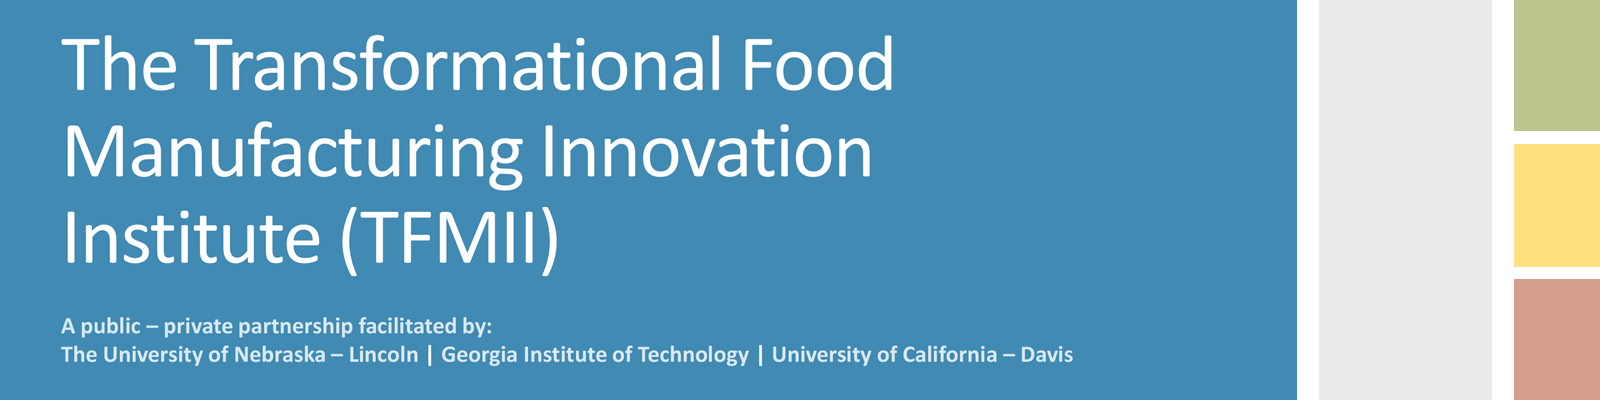 The Transformational Food Manufacturing Innovation Institute - University of Nebraska-Lincoln, Georgia Tech, UC-Davis